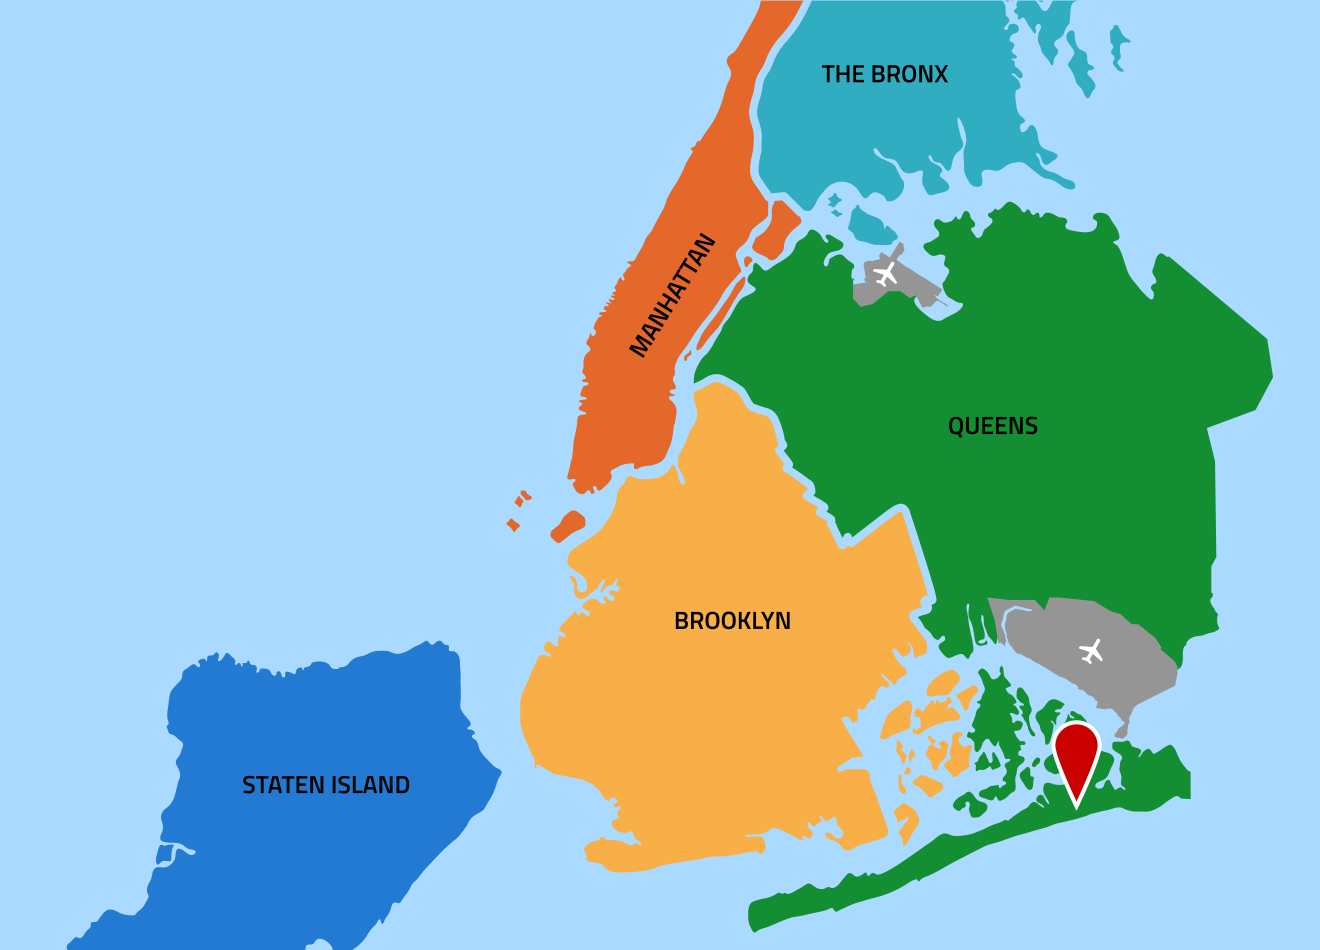 New York City map showing location of Far Rockaway in southest corner of Queens, south of JFK airport